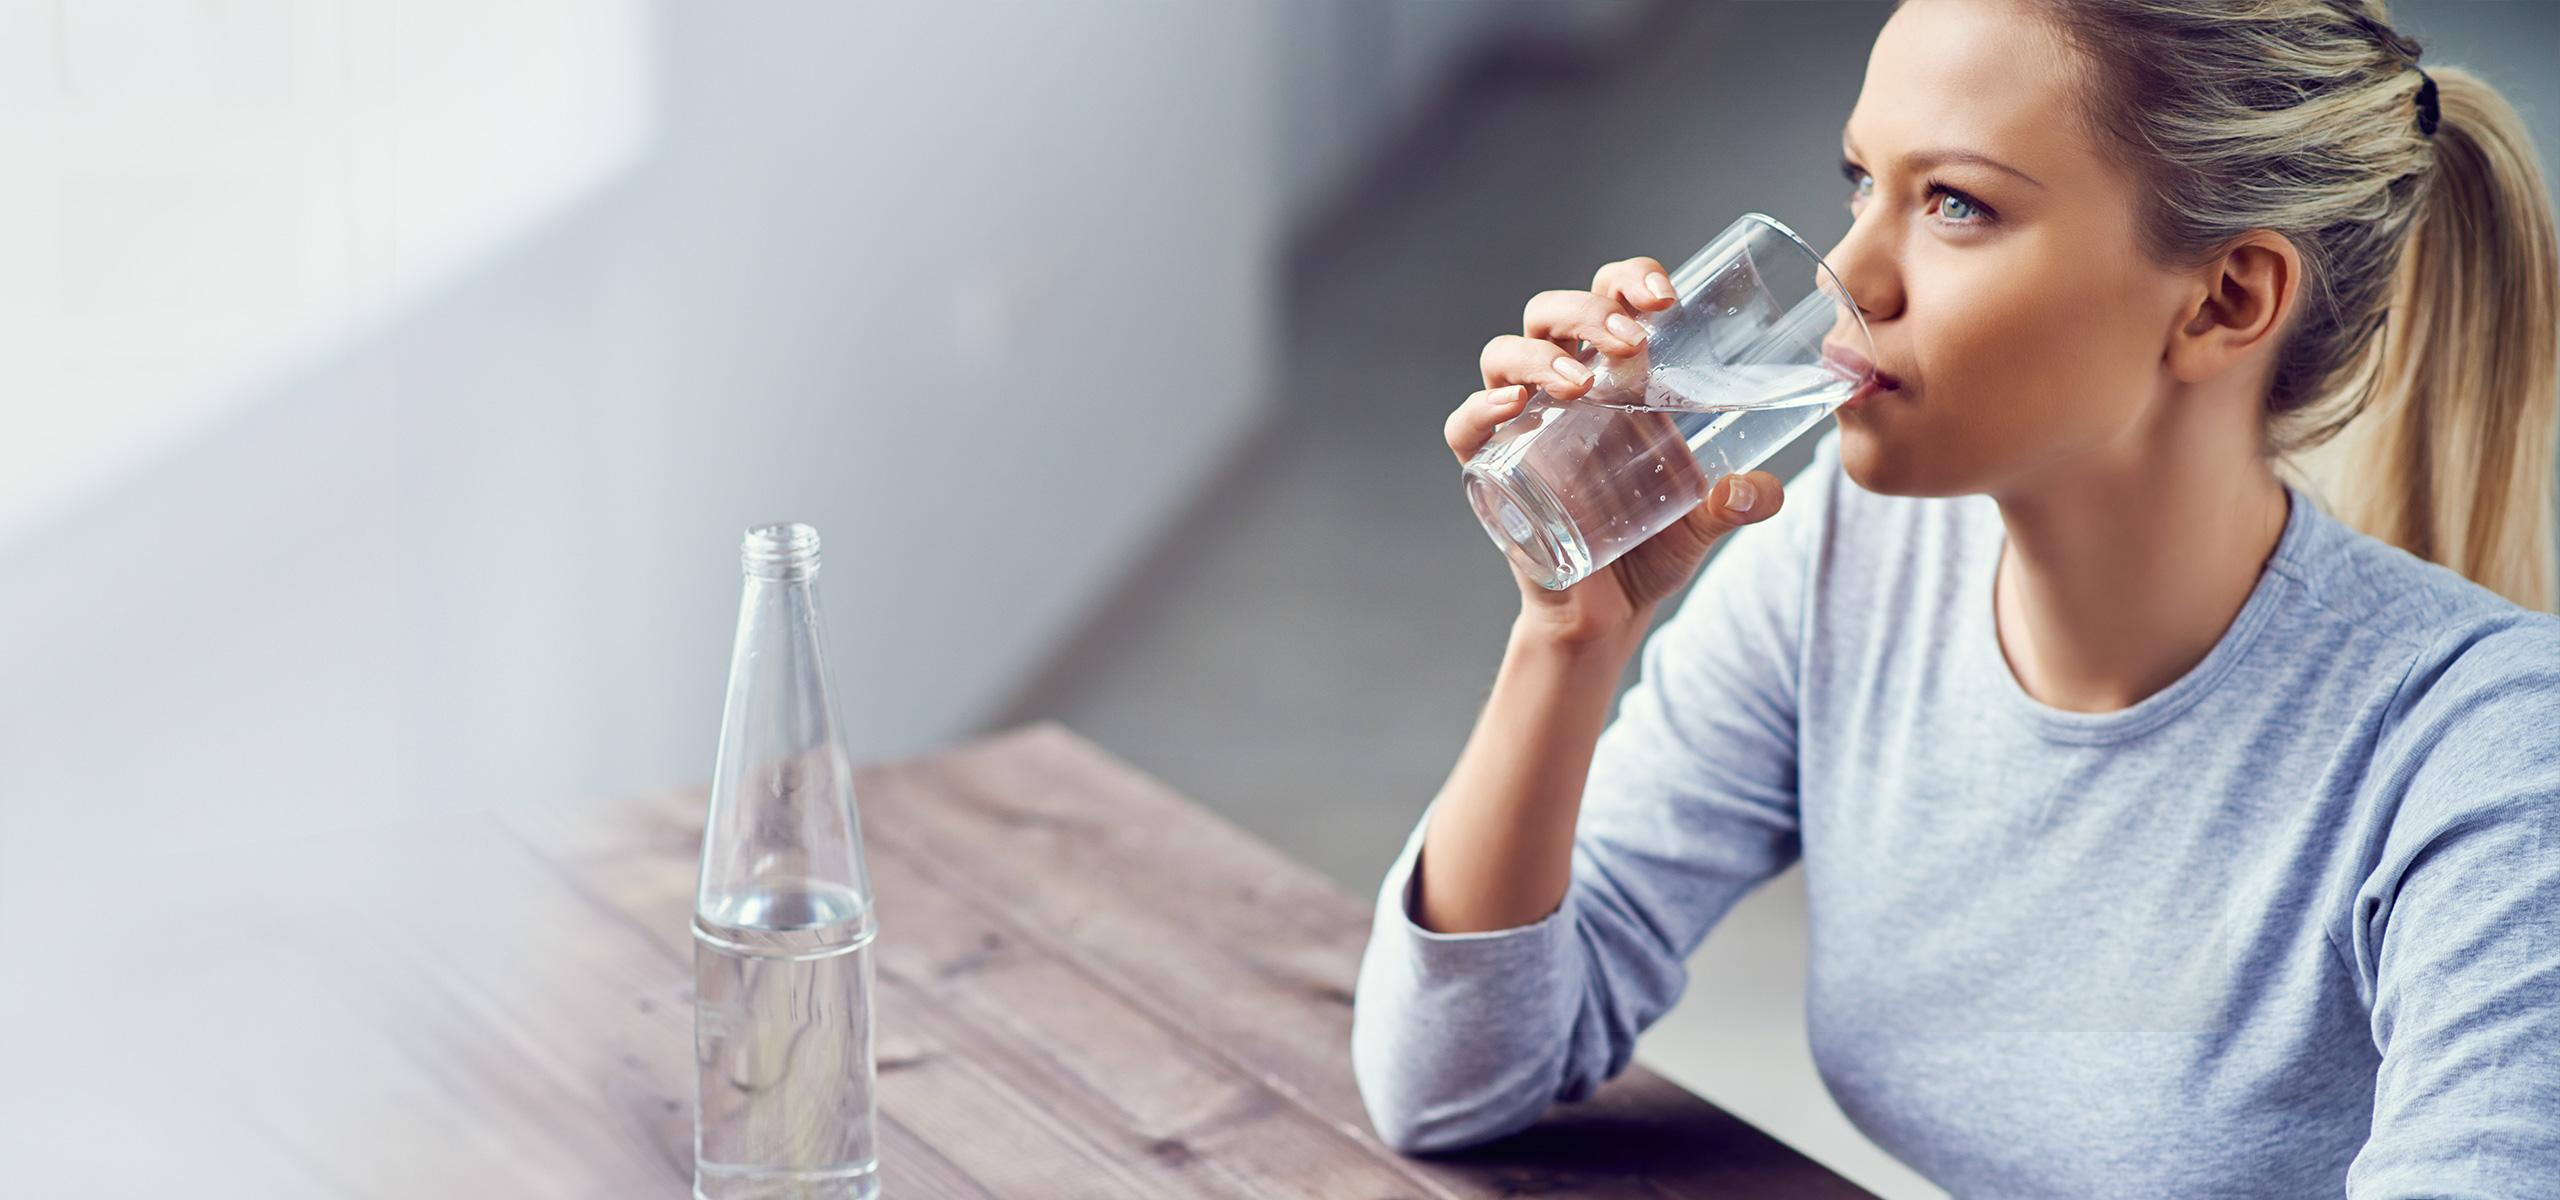 brita_experience_personal_hydration_needs_woman_drinking_water